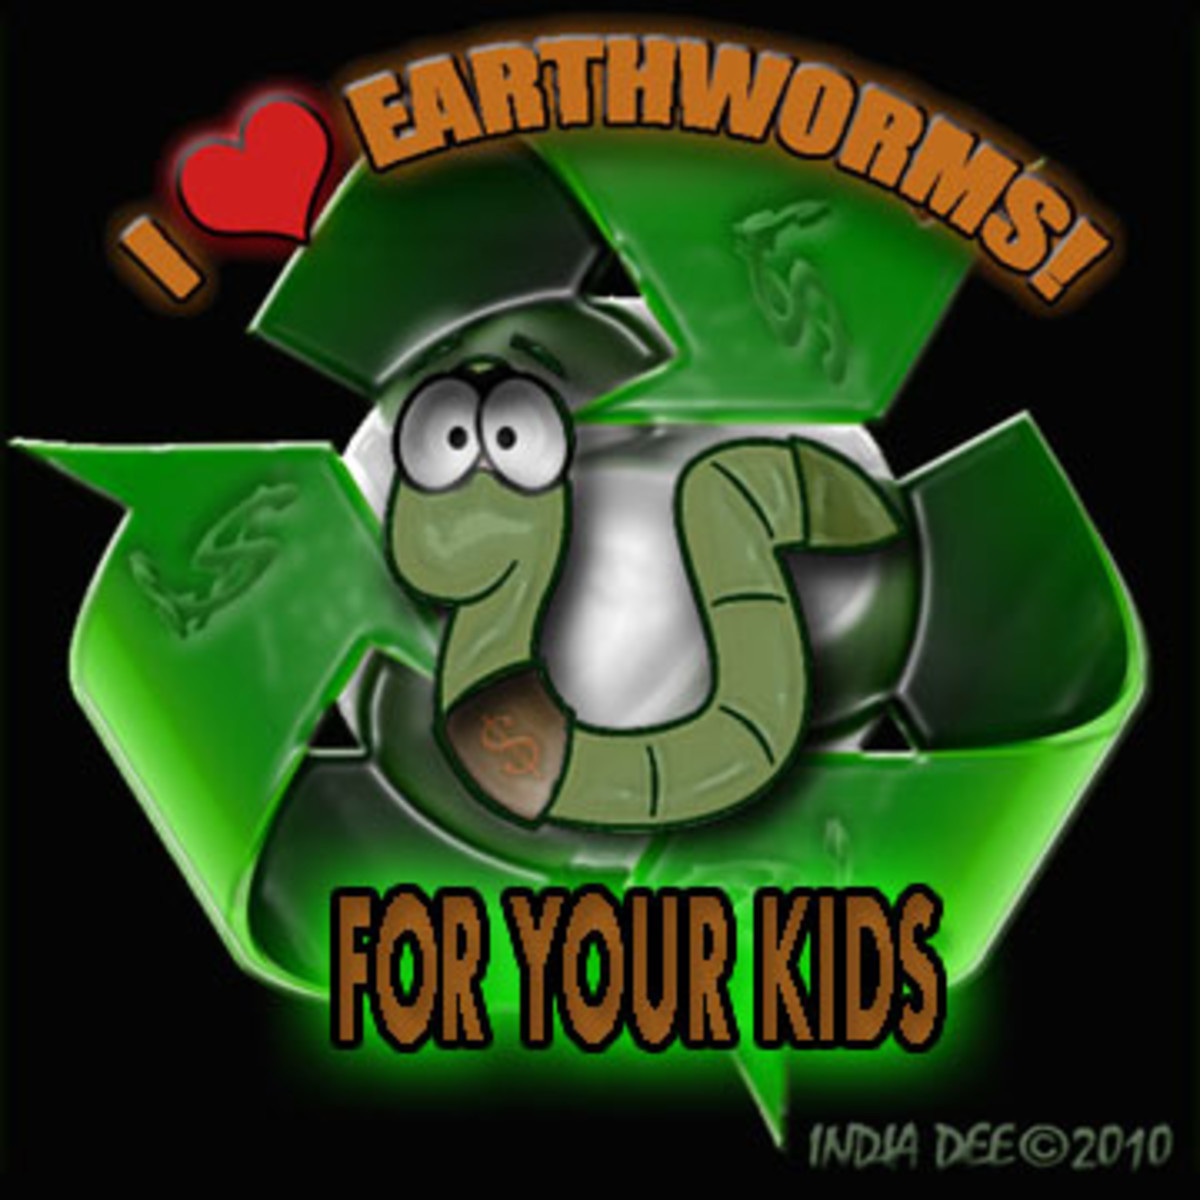 I Love Earthworms graphic